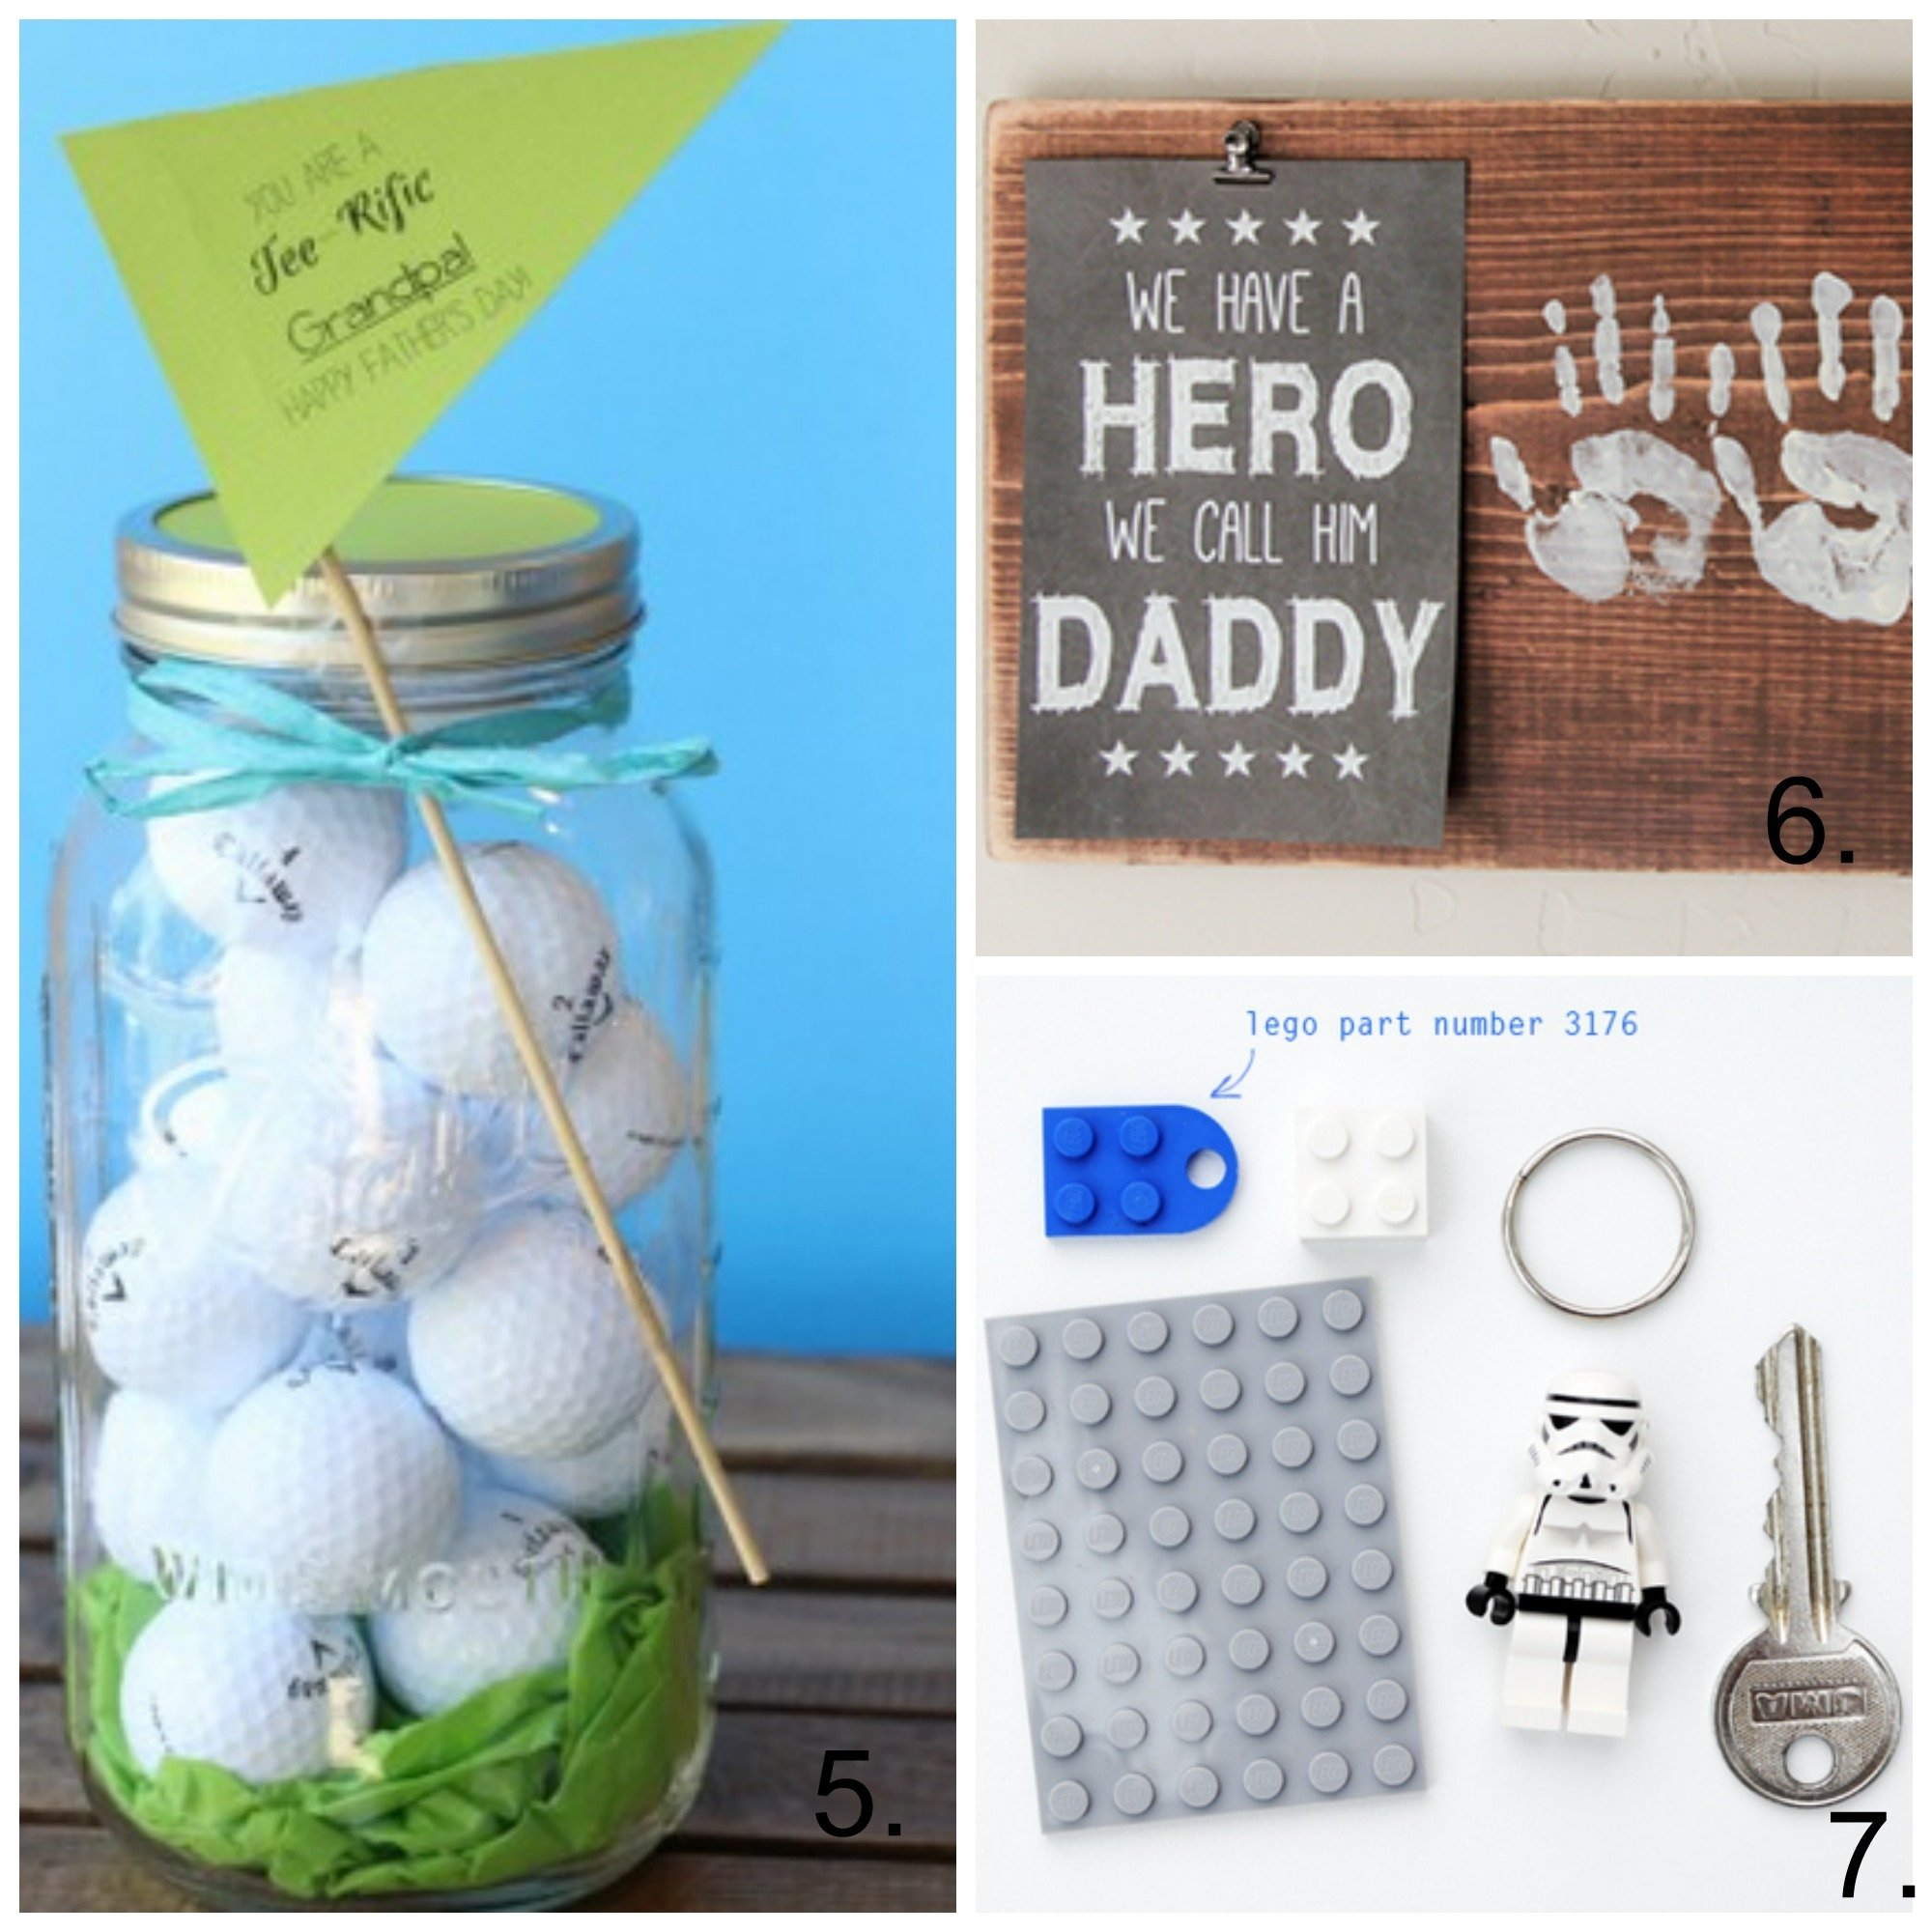 20 creative father's day gift ideas - my frugal adventures